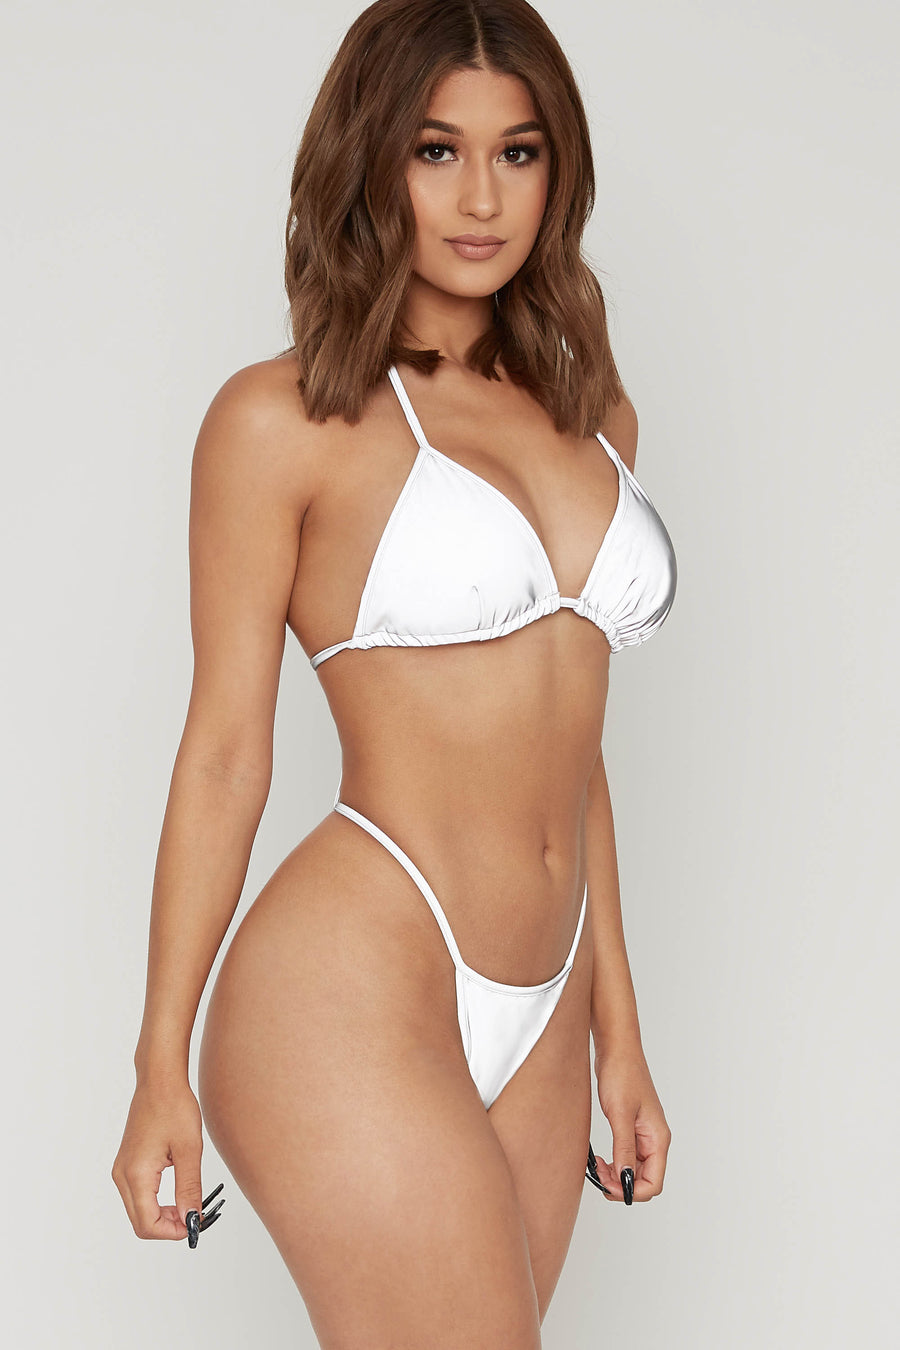 Light Up The Night Reflective Bikini